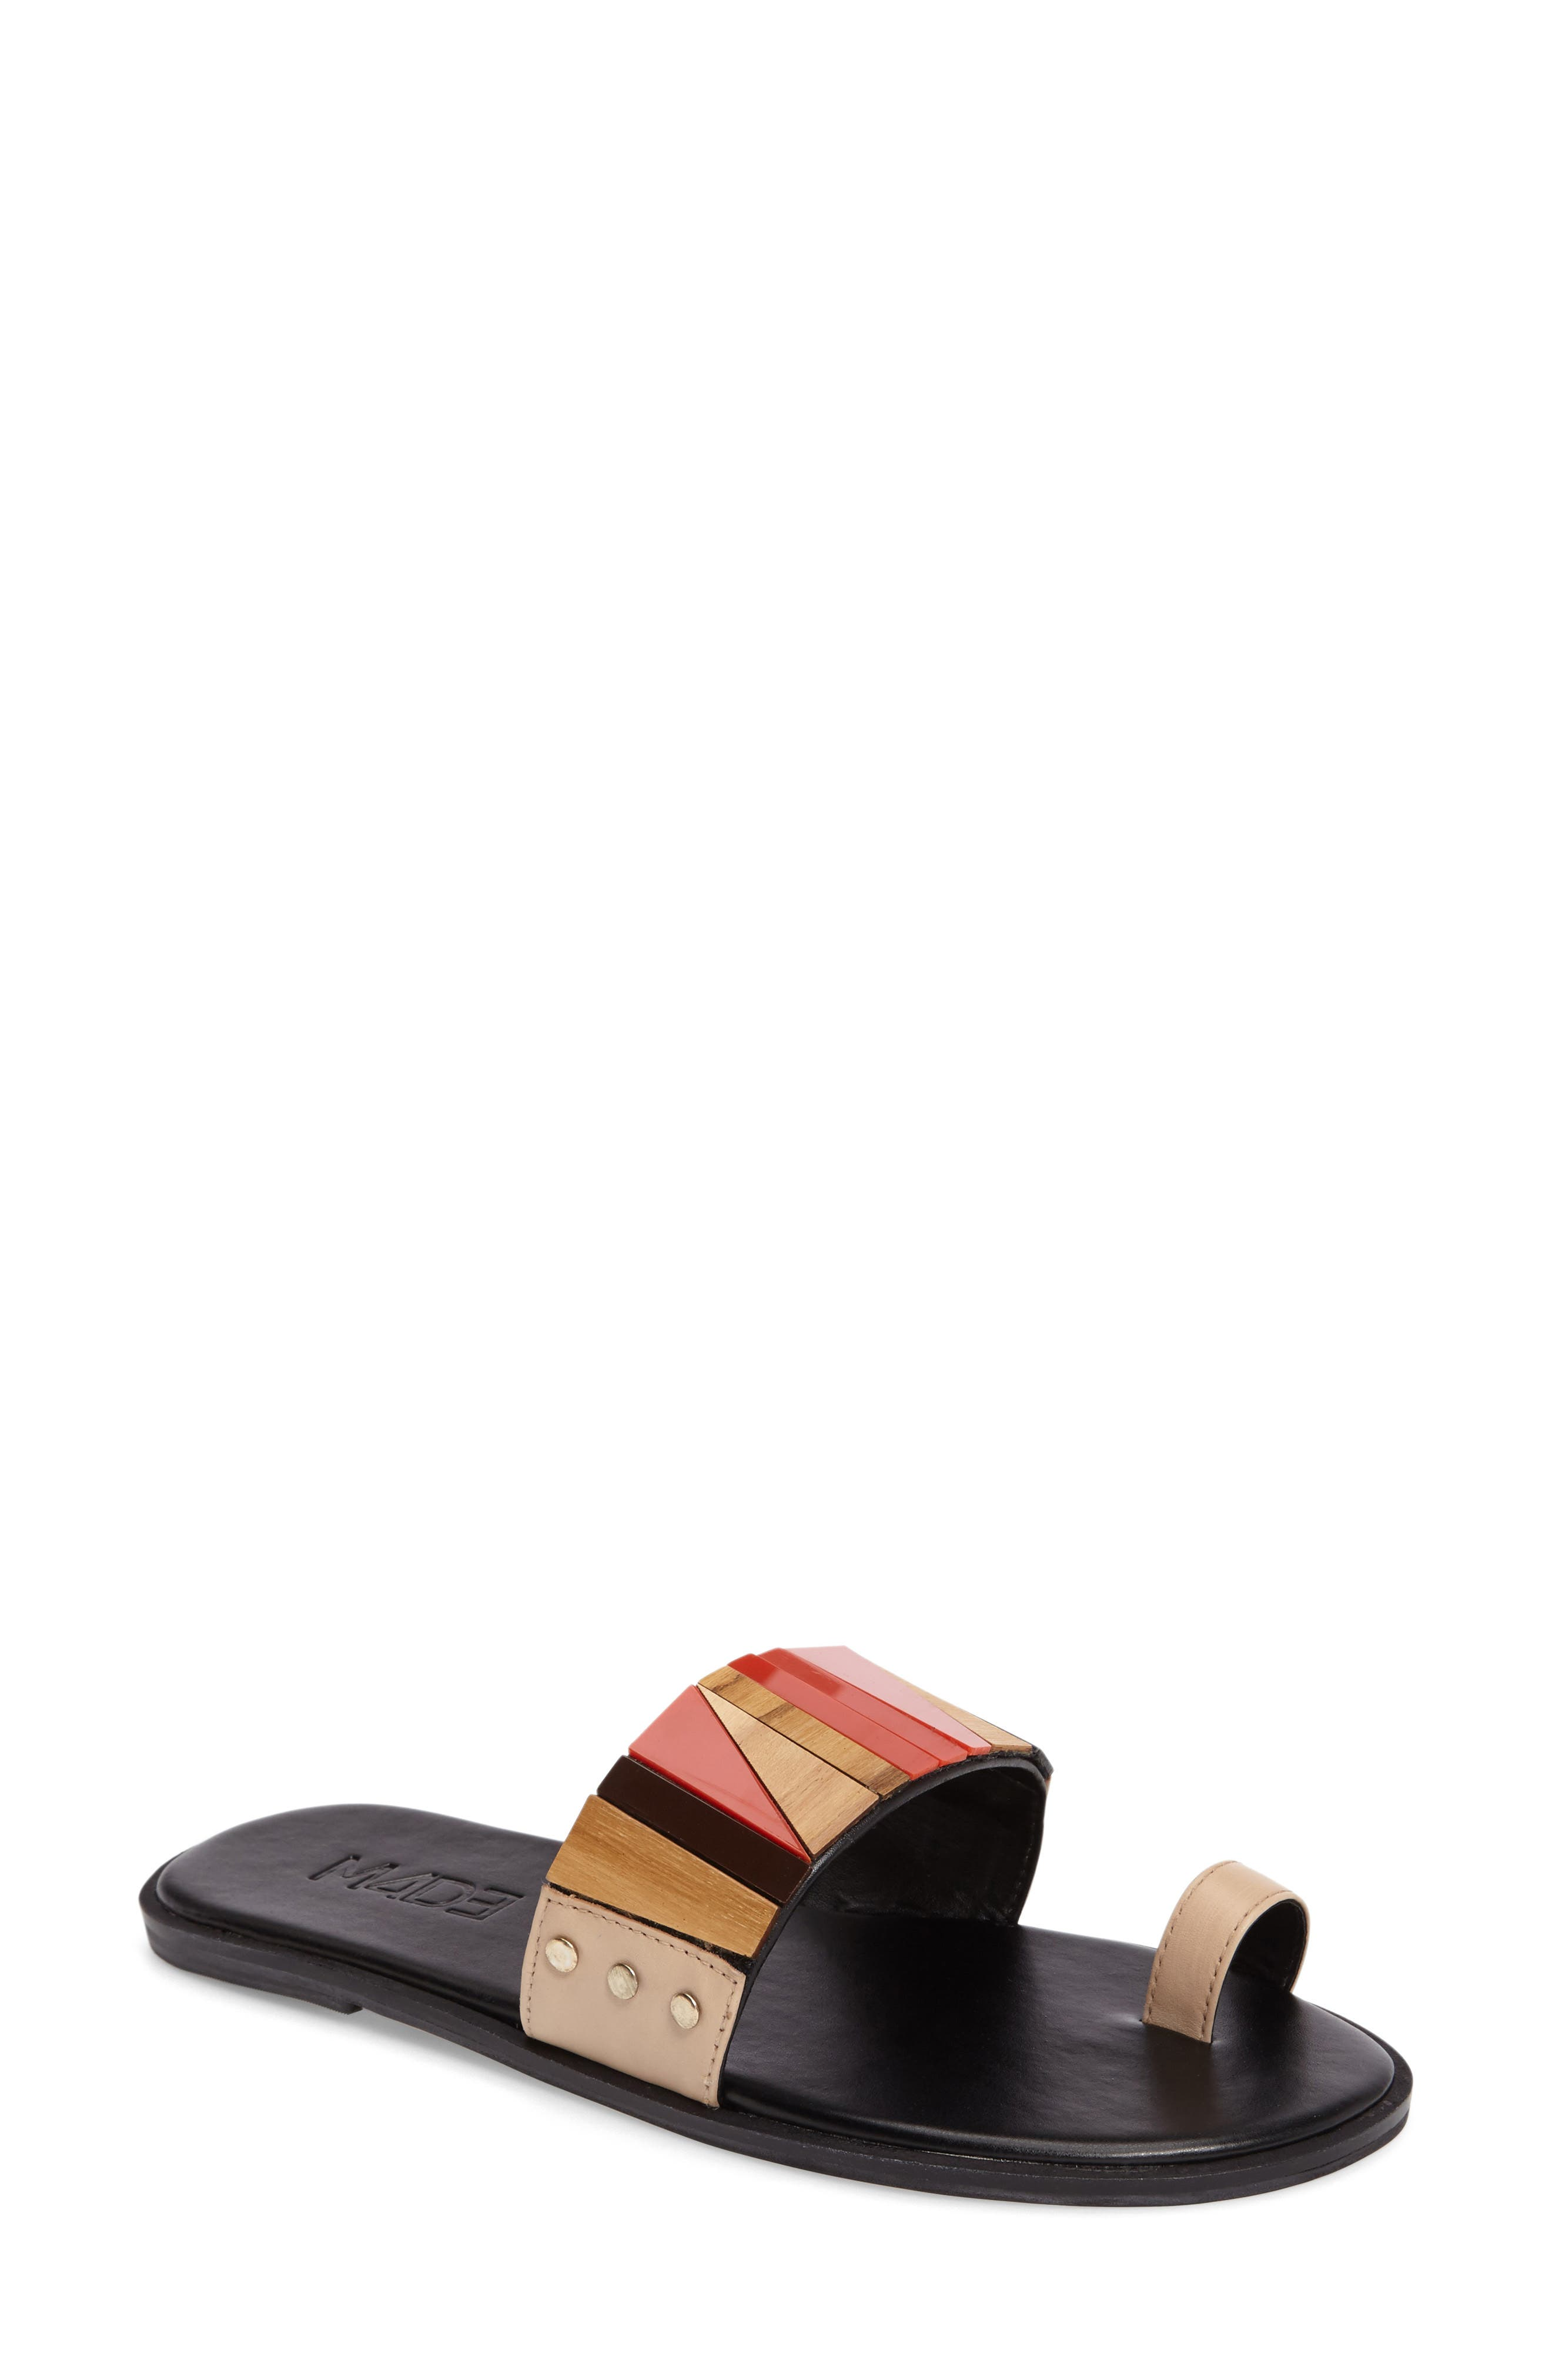 M4D3 FOOTWEAR M4D3 Poppy Toe Loop Slide Sandal